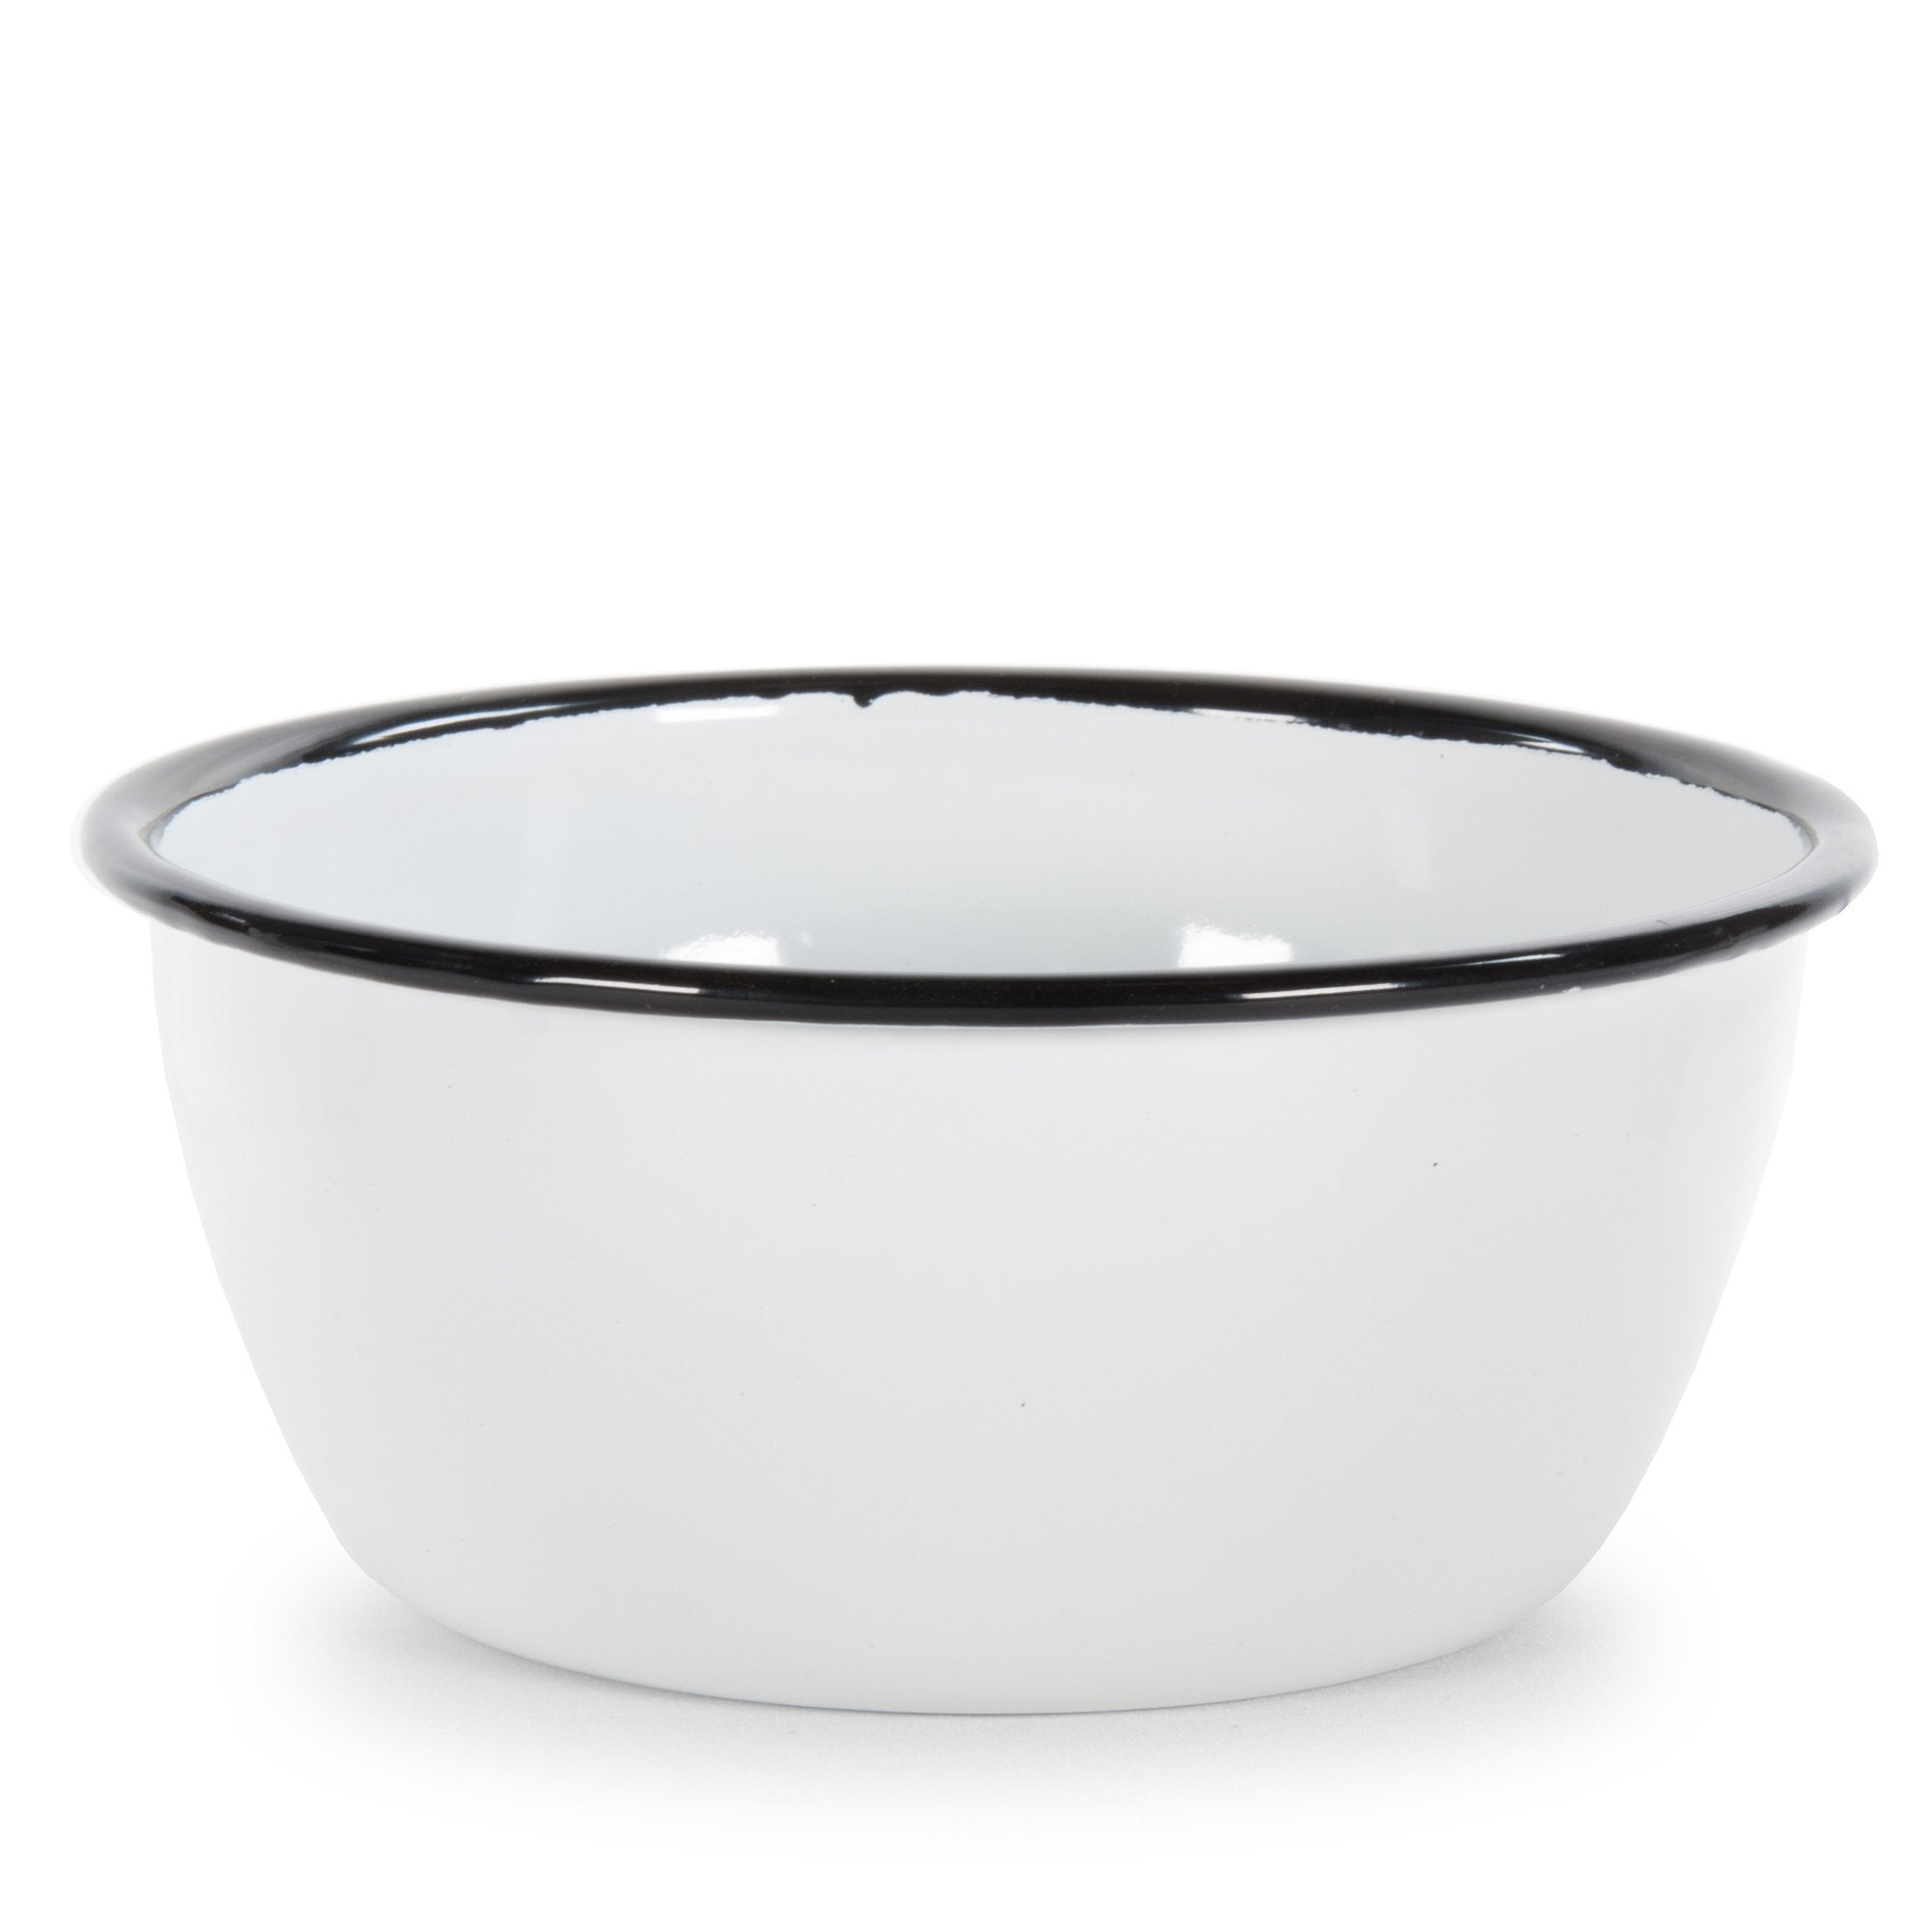 RBW93 - Glampware  Bowls - White with Black Trim  - Set of 4